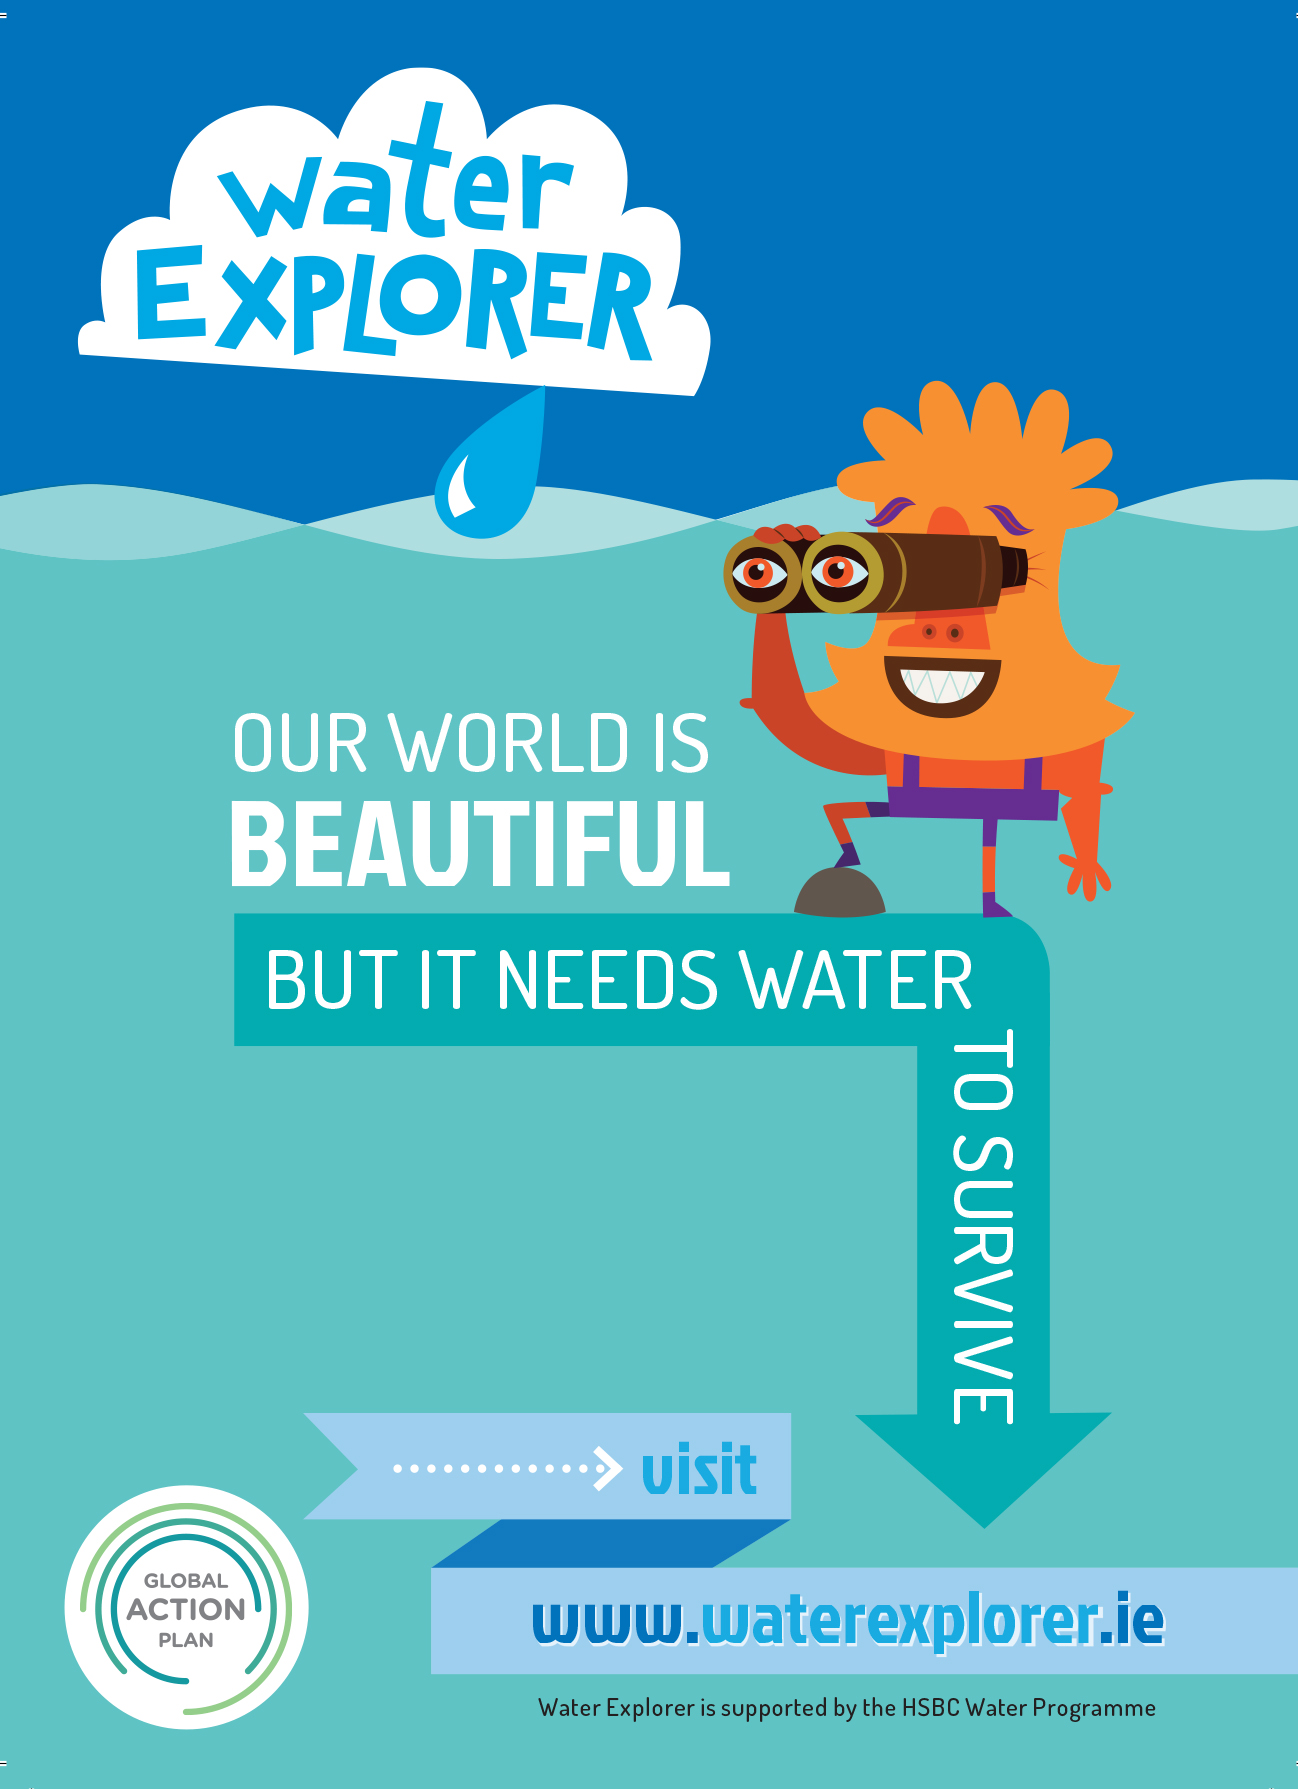 Water Explorer Ireland